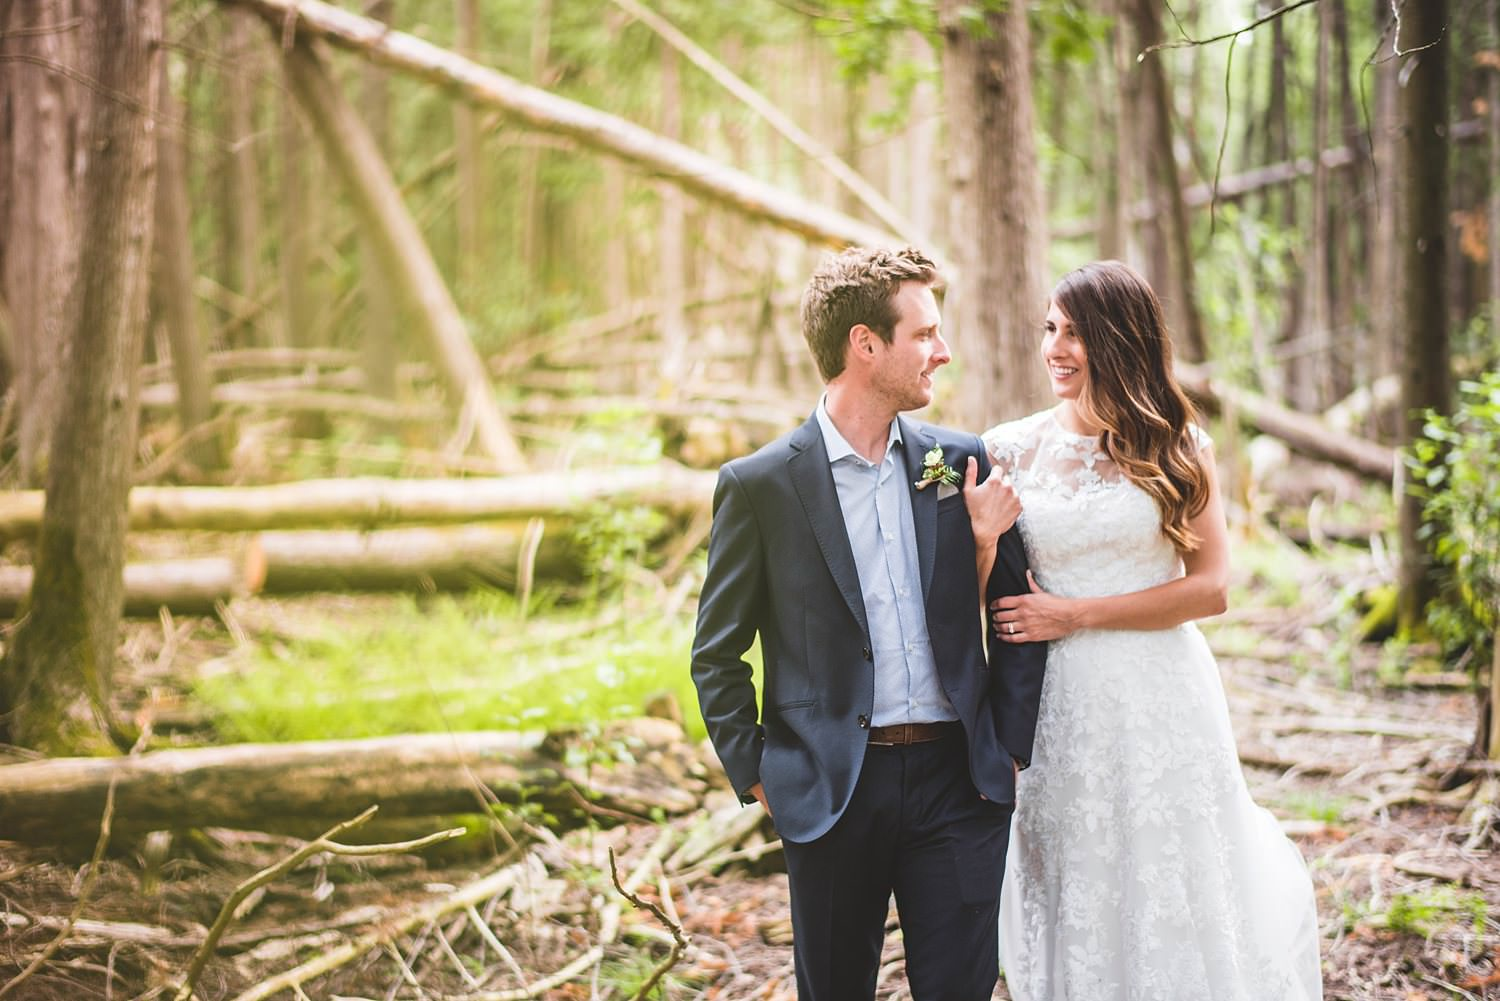 Double K Estate - Petoskey Traverse City - Michigan Wedding Photographer - 291.jpg